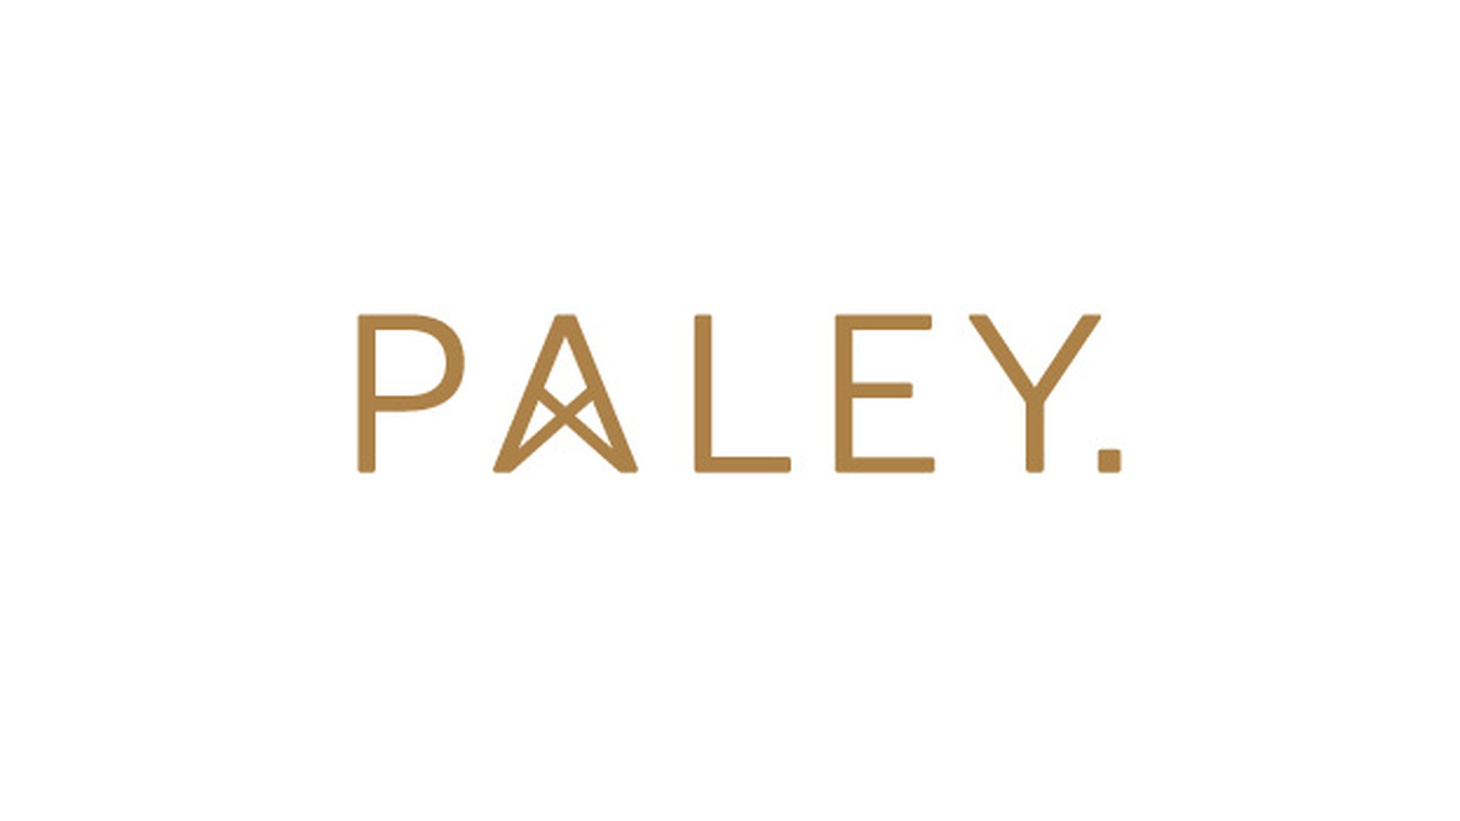 The next time you've got business in Hollywood, do it over Martini mussels, gochujang beef tartare and popcorn ice cream at Paley.